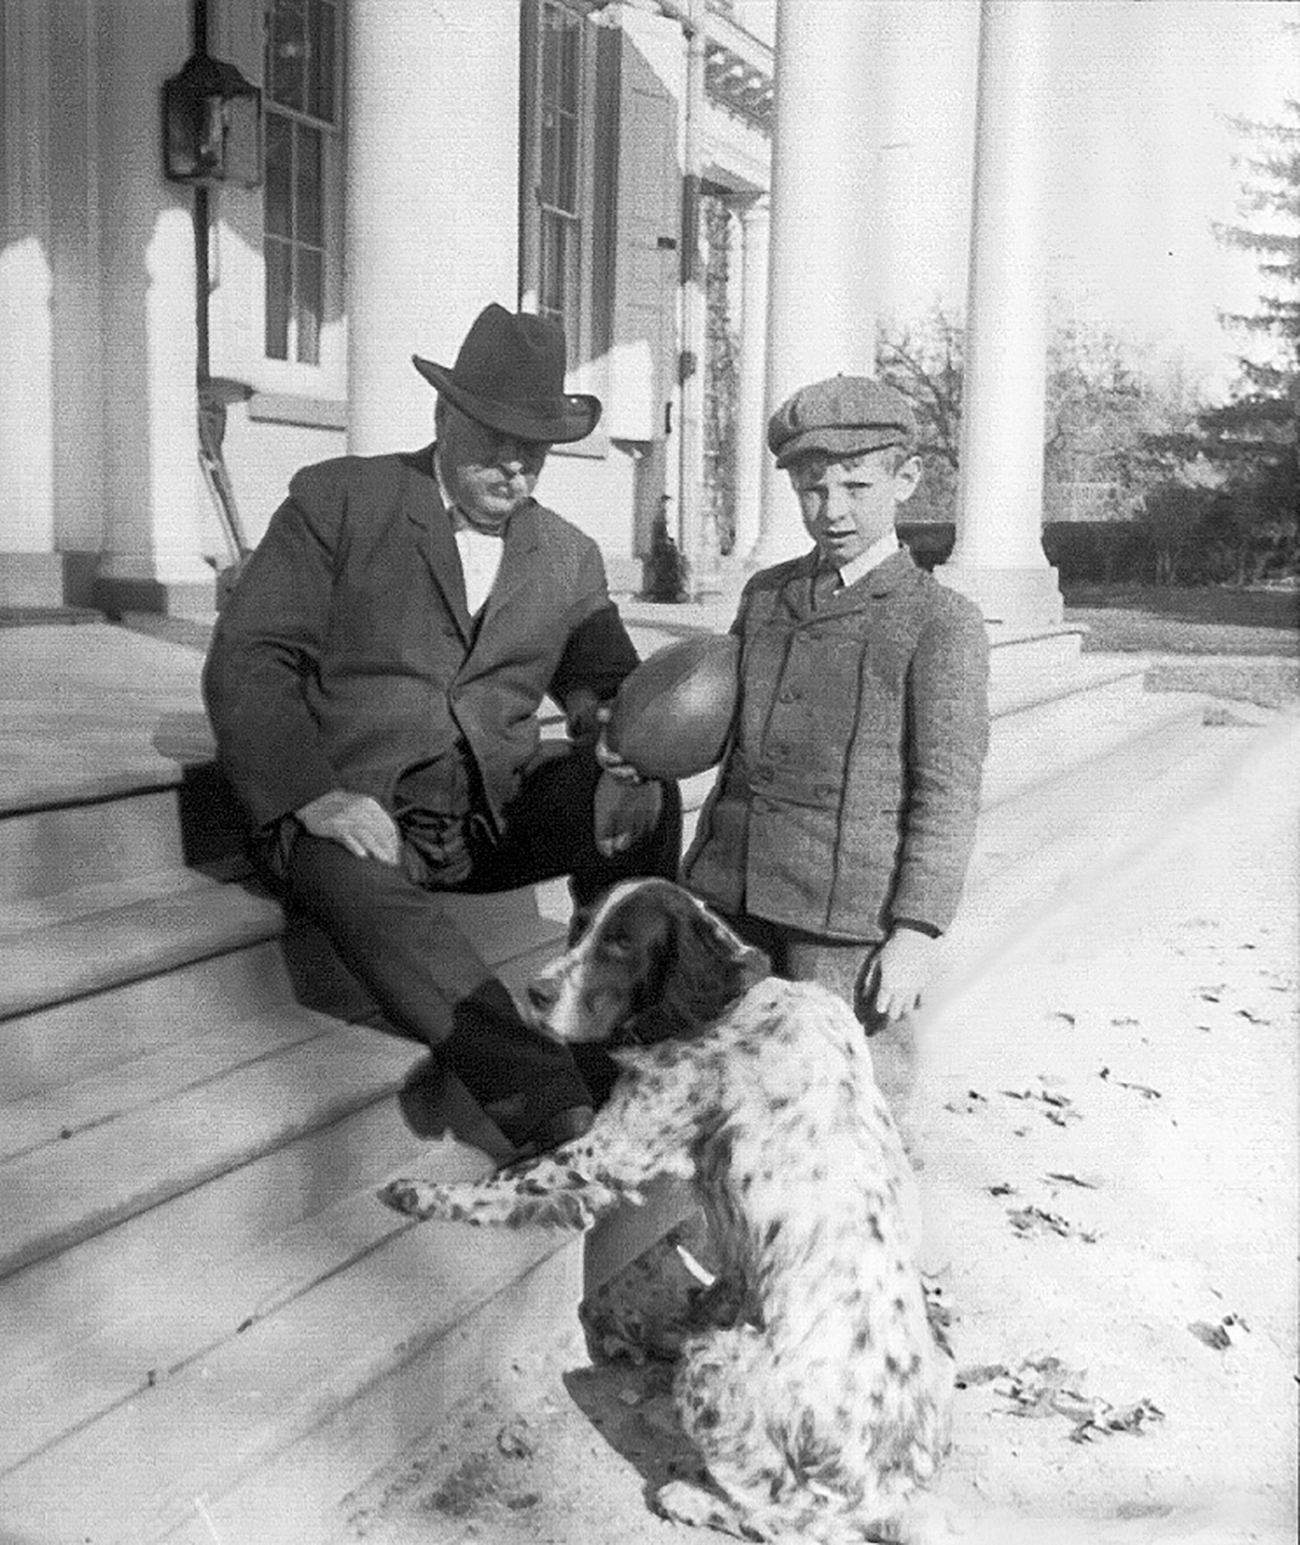 Photograph of Grover Cleveland, small boy and spotted dog